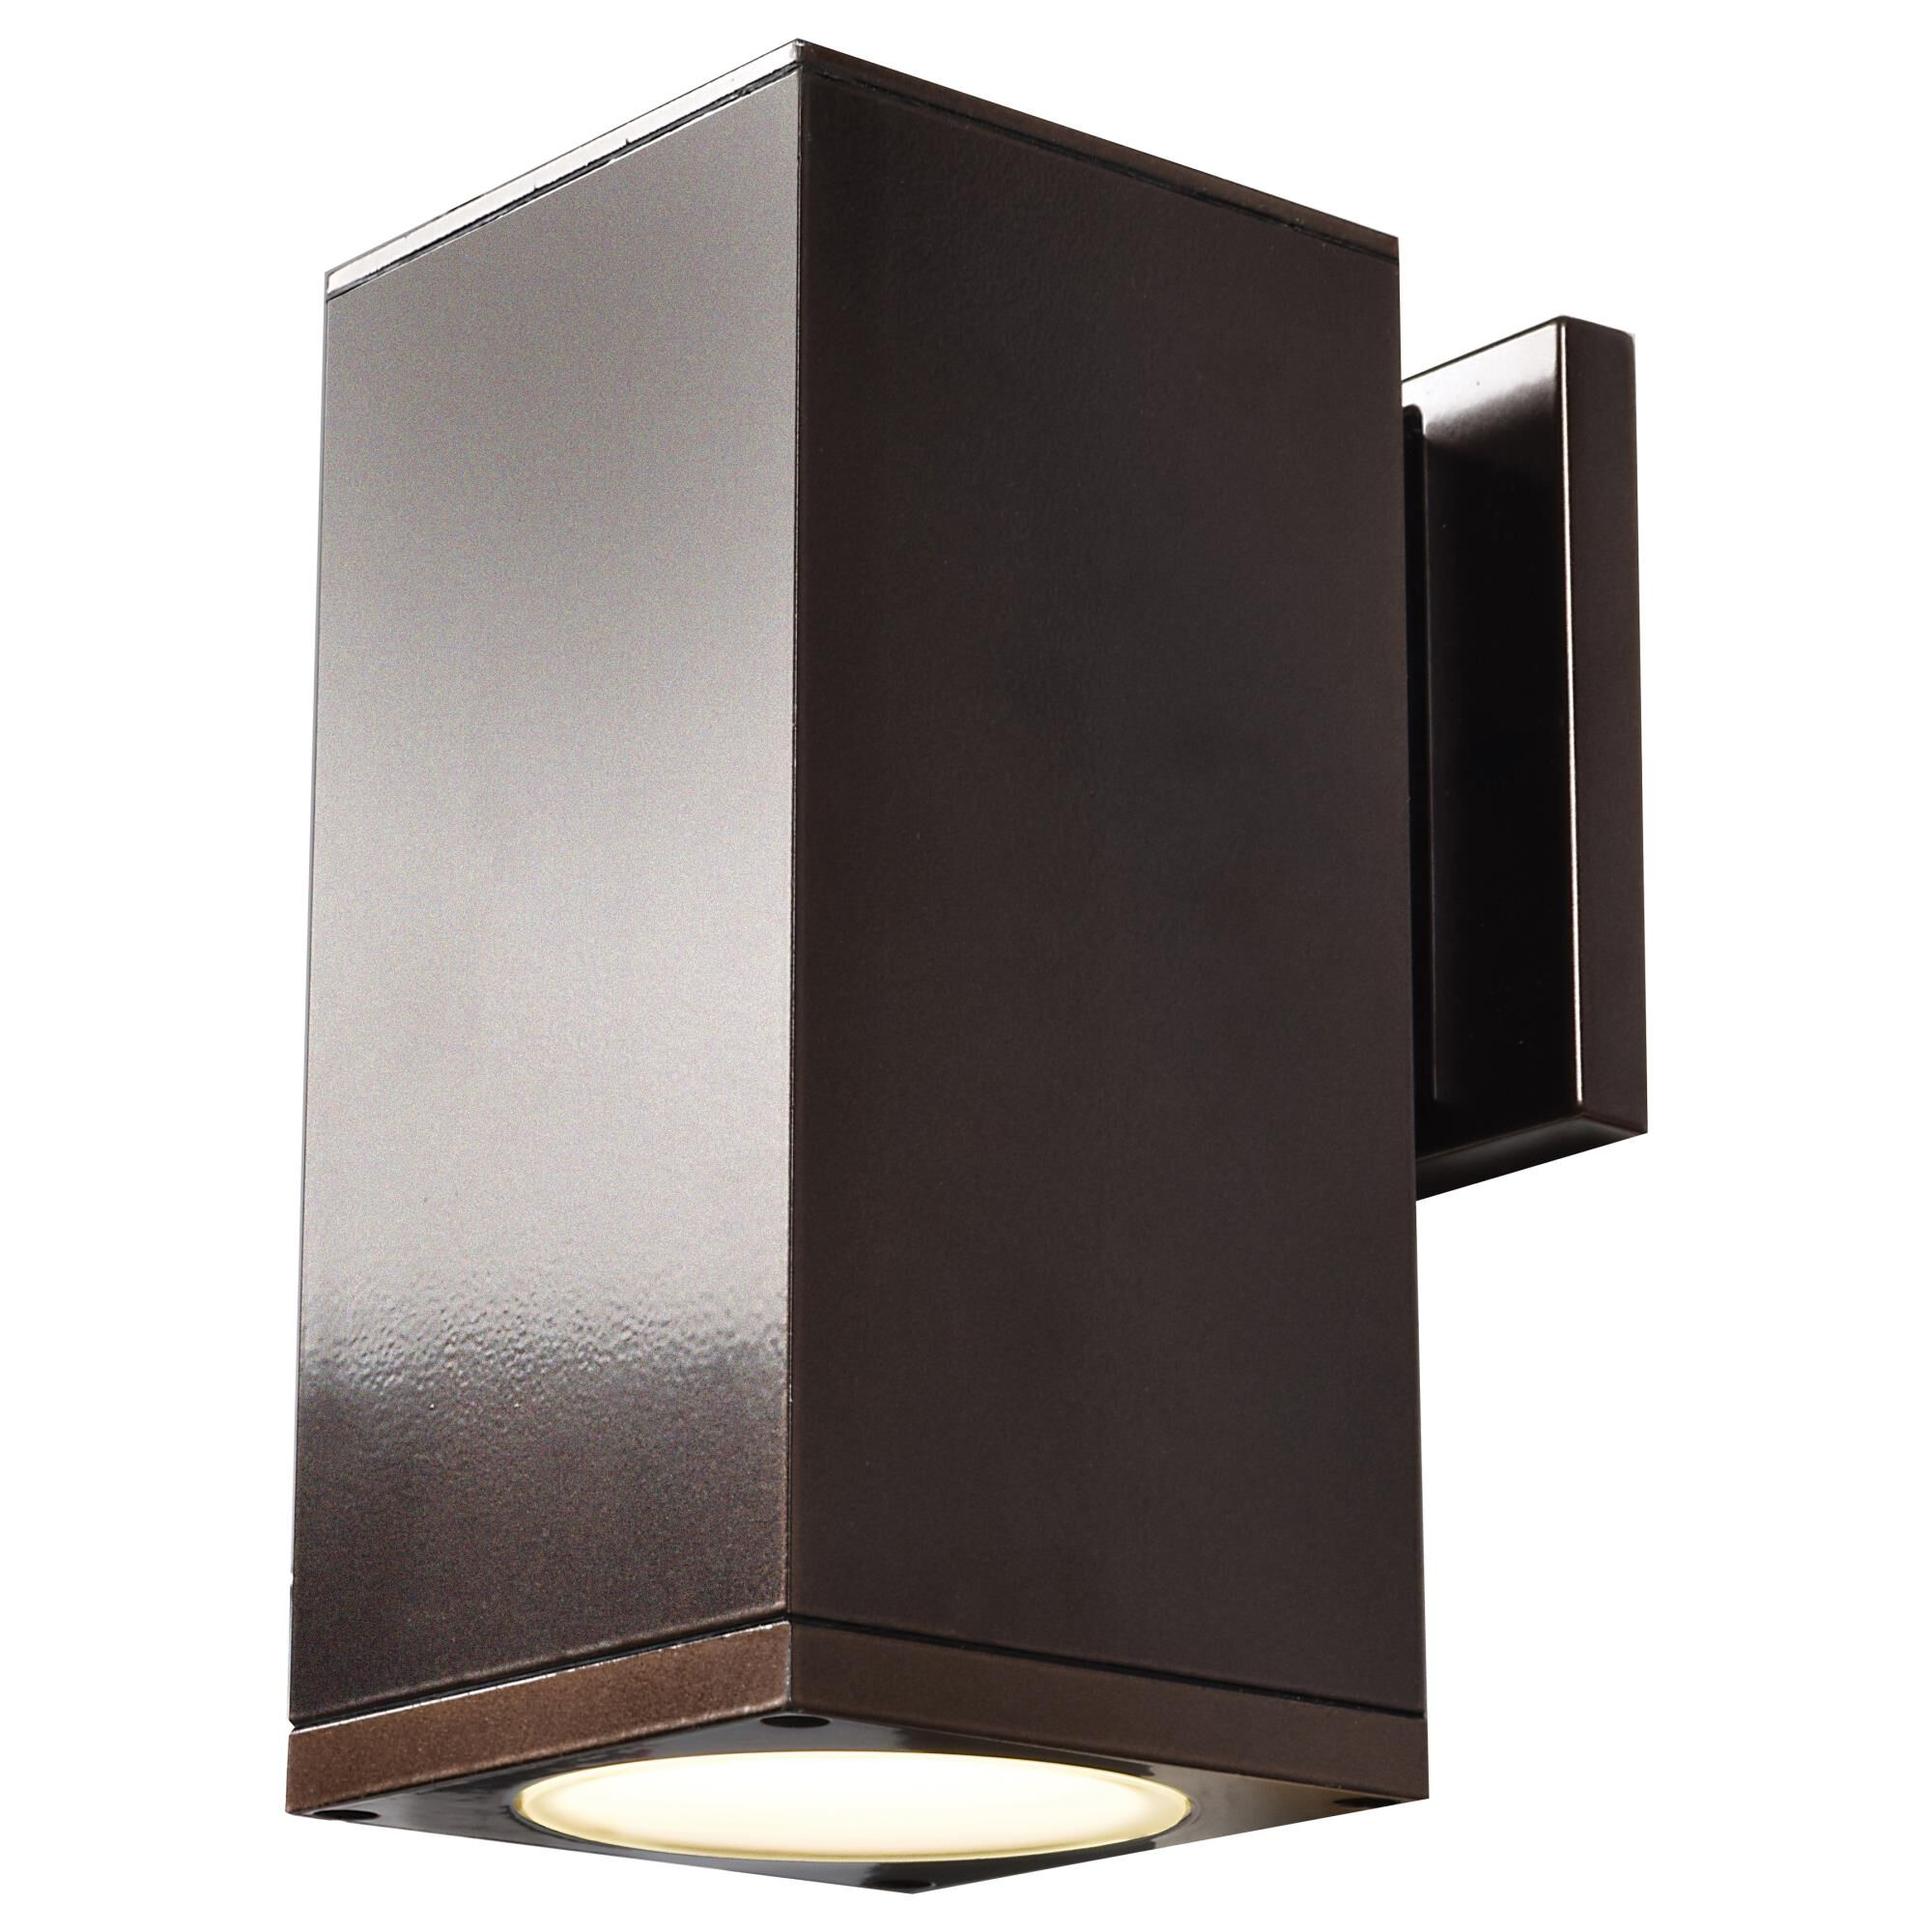 Access Lighting Bayside 8 Inch Tall 1 Light LED Outdoor Wall Light Bayside 20032LEDMG BRZFST Modern Contemporary